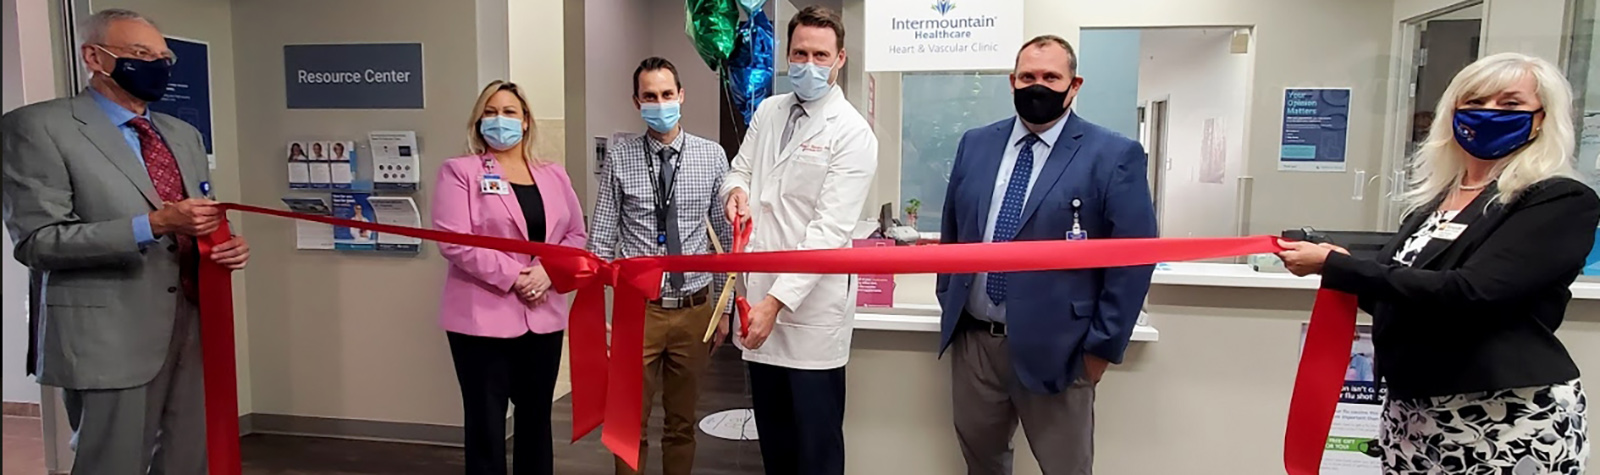 Intermountain Healthcare Opens News Heart and Vascular Clinic in Mesquite